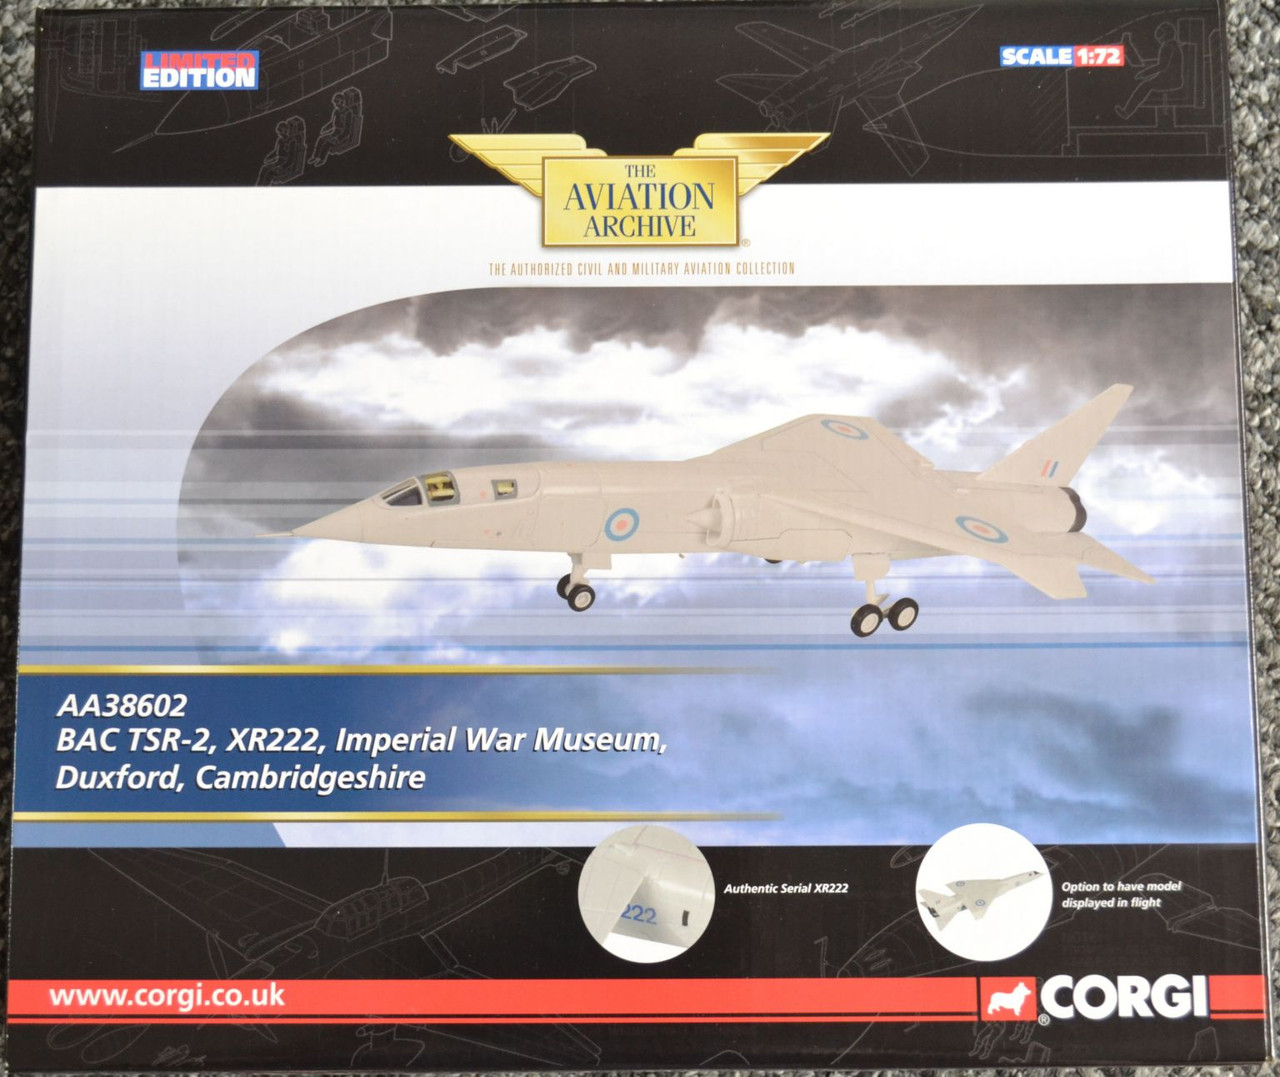 Corgi AA38602 TSR-2 XR222 - 1:72 Scale Diecast Model